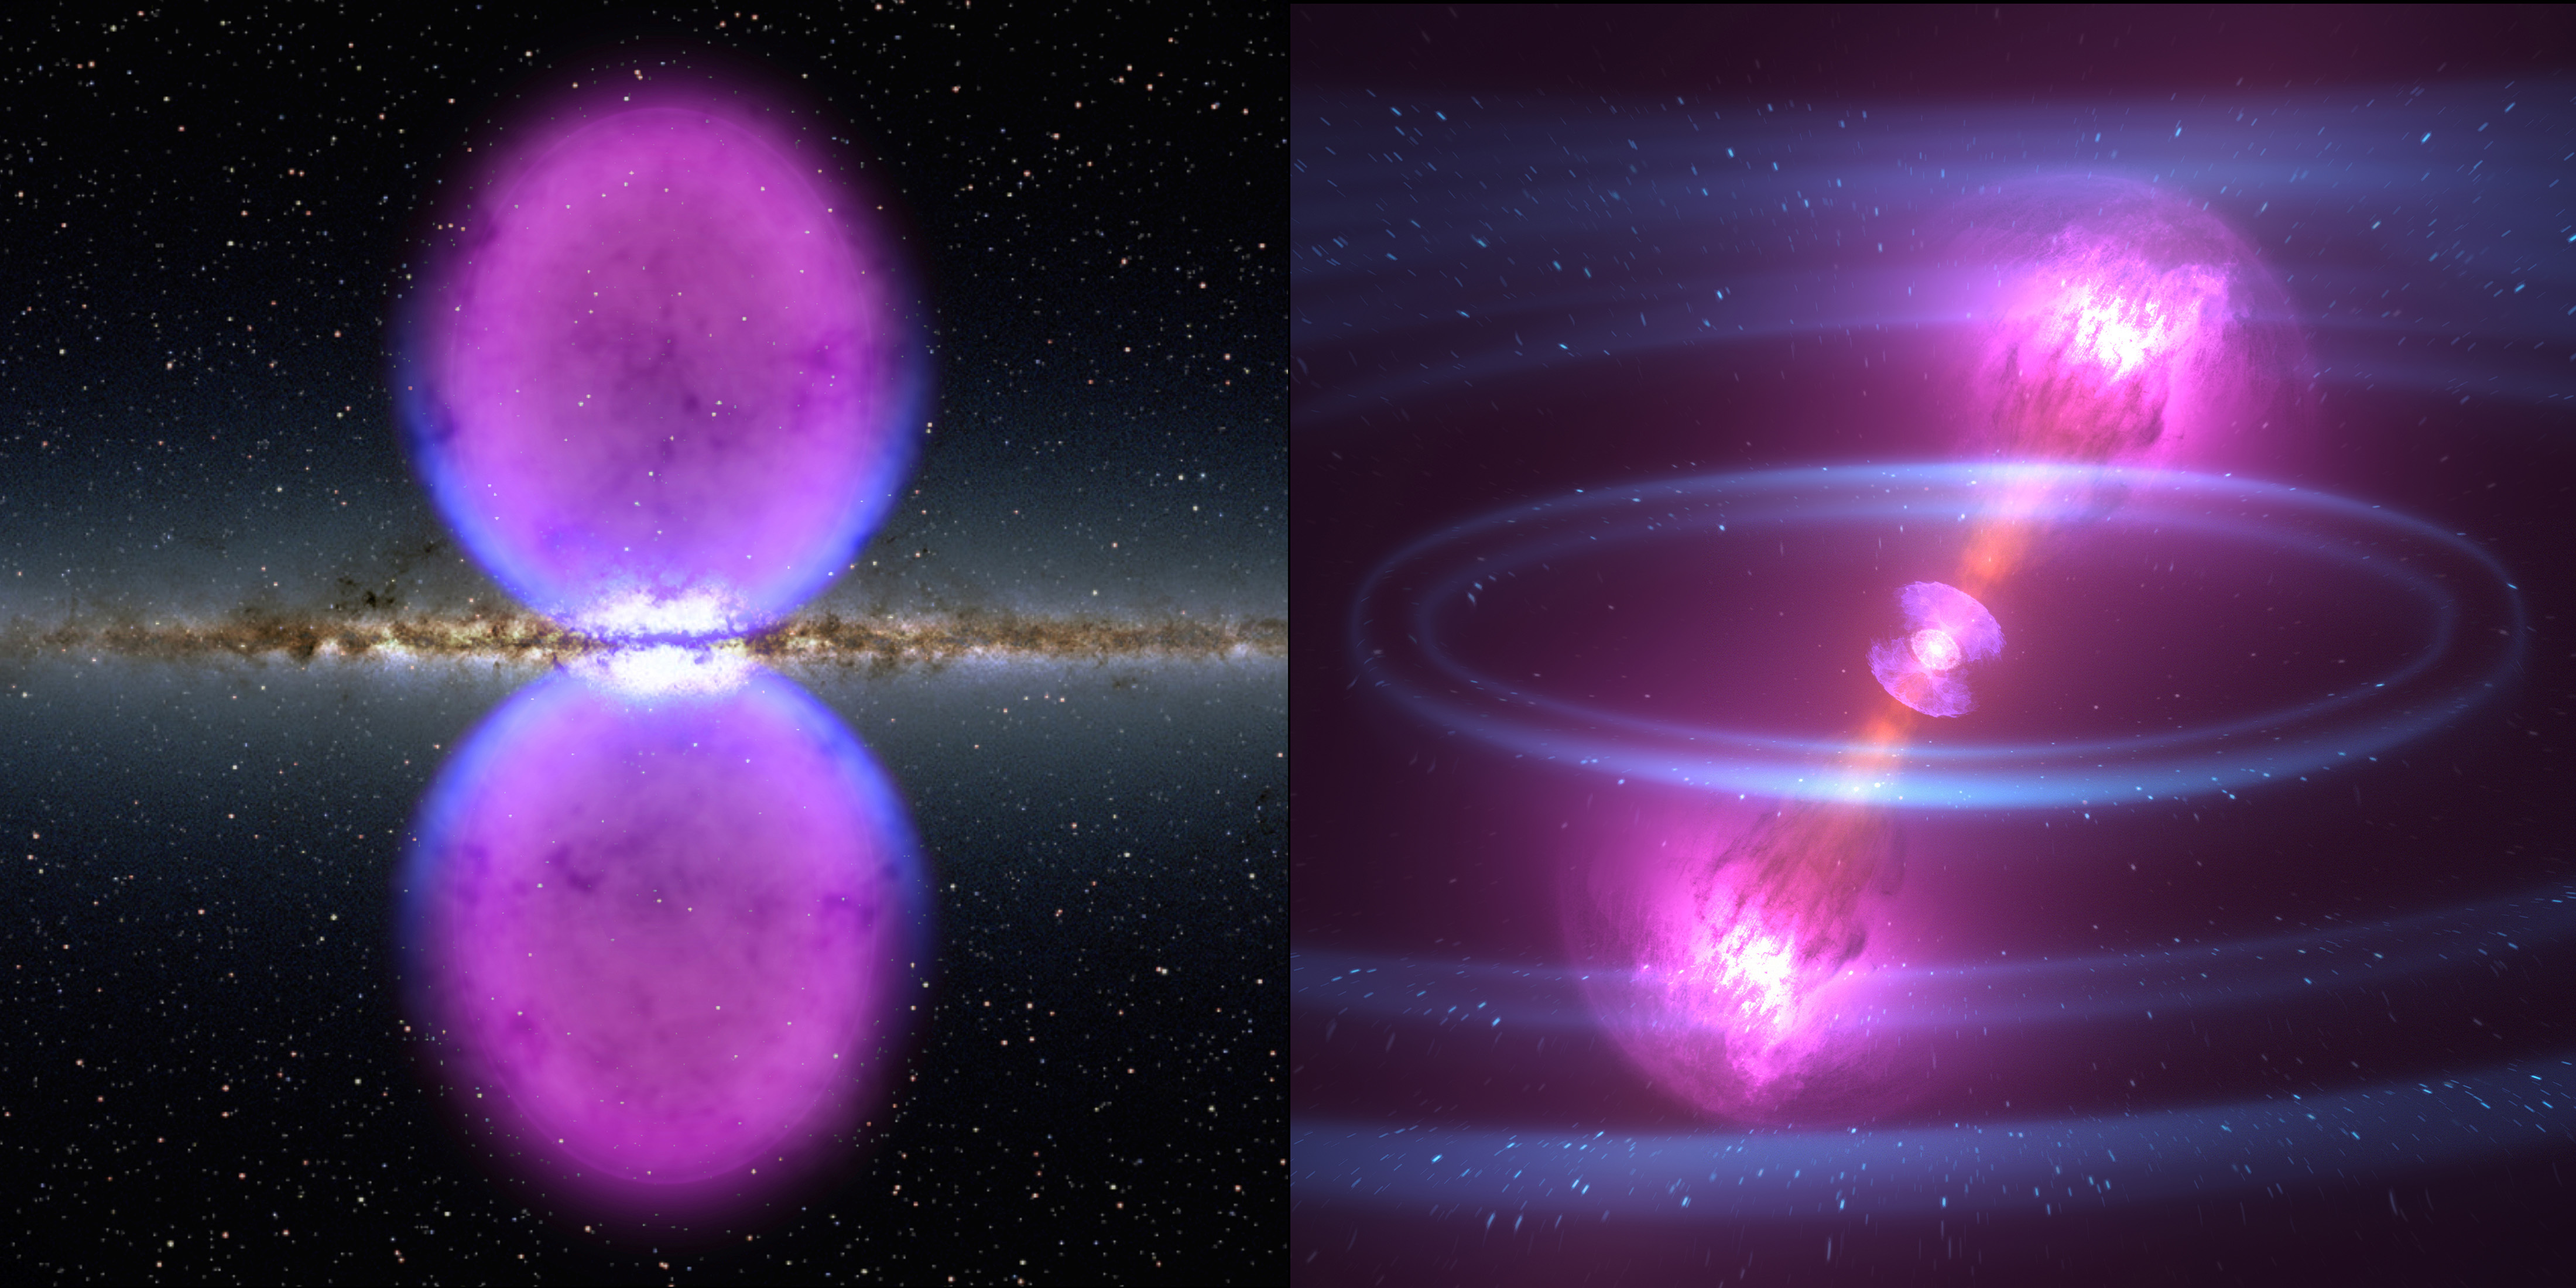 Astronomy images from Fermi Gamma-ray Space Telescope's